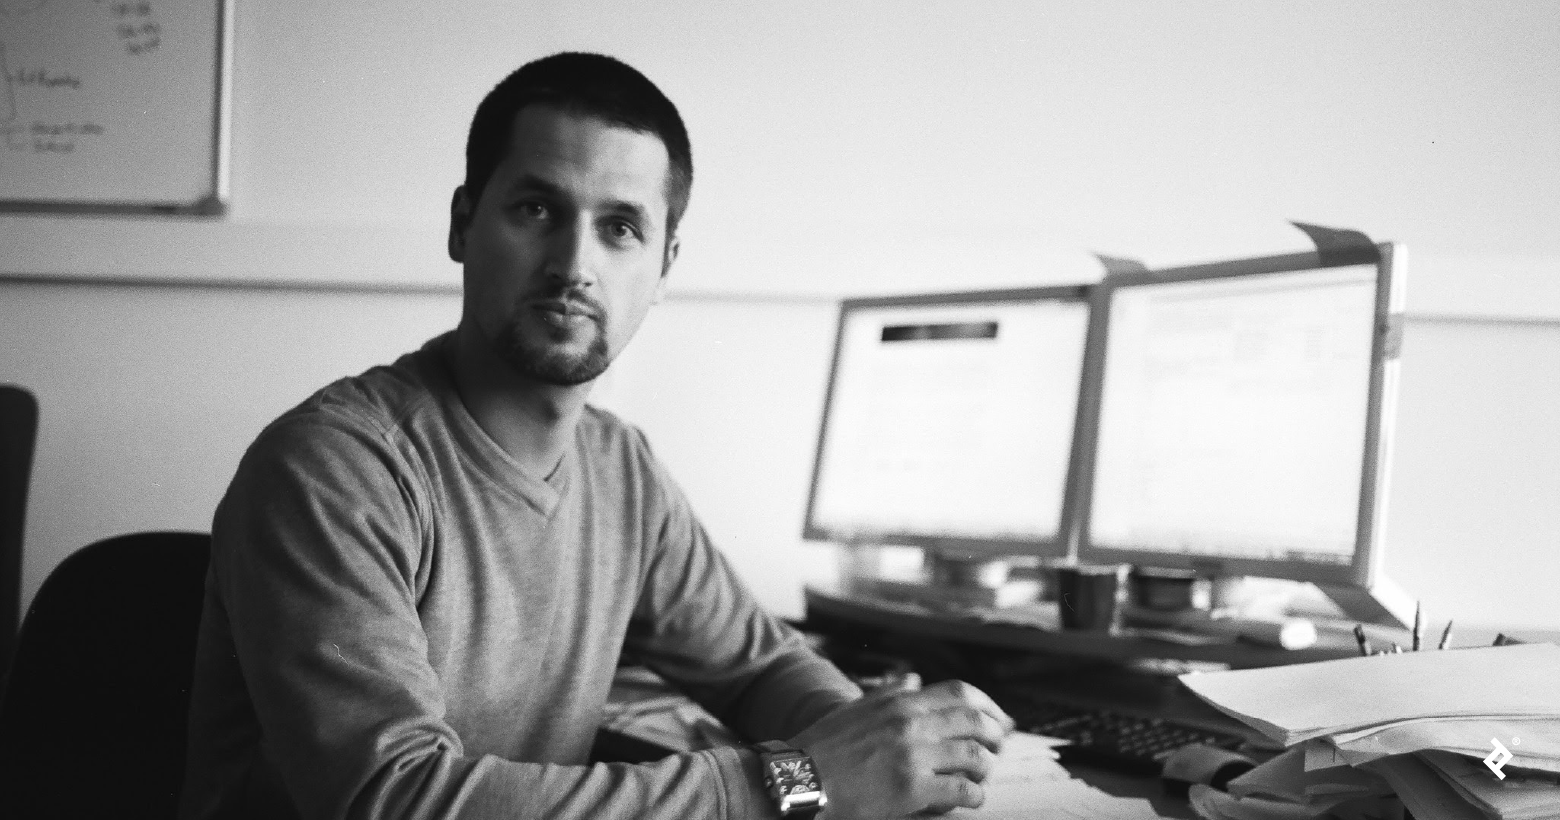 Dmitry Petrashev, Toptal's lead product manager